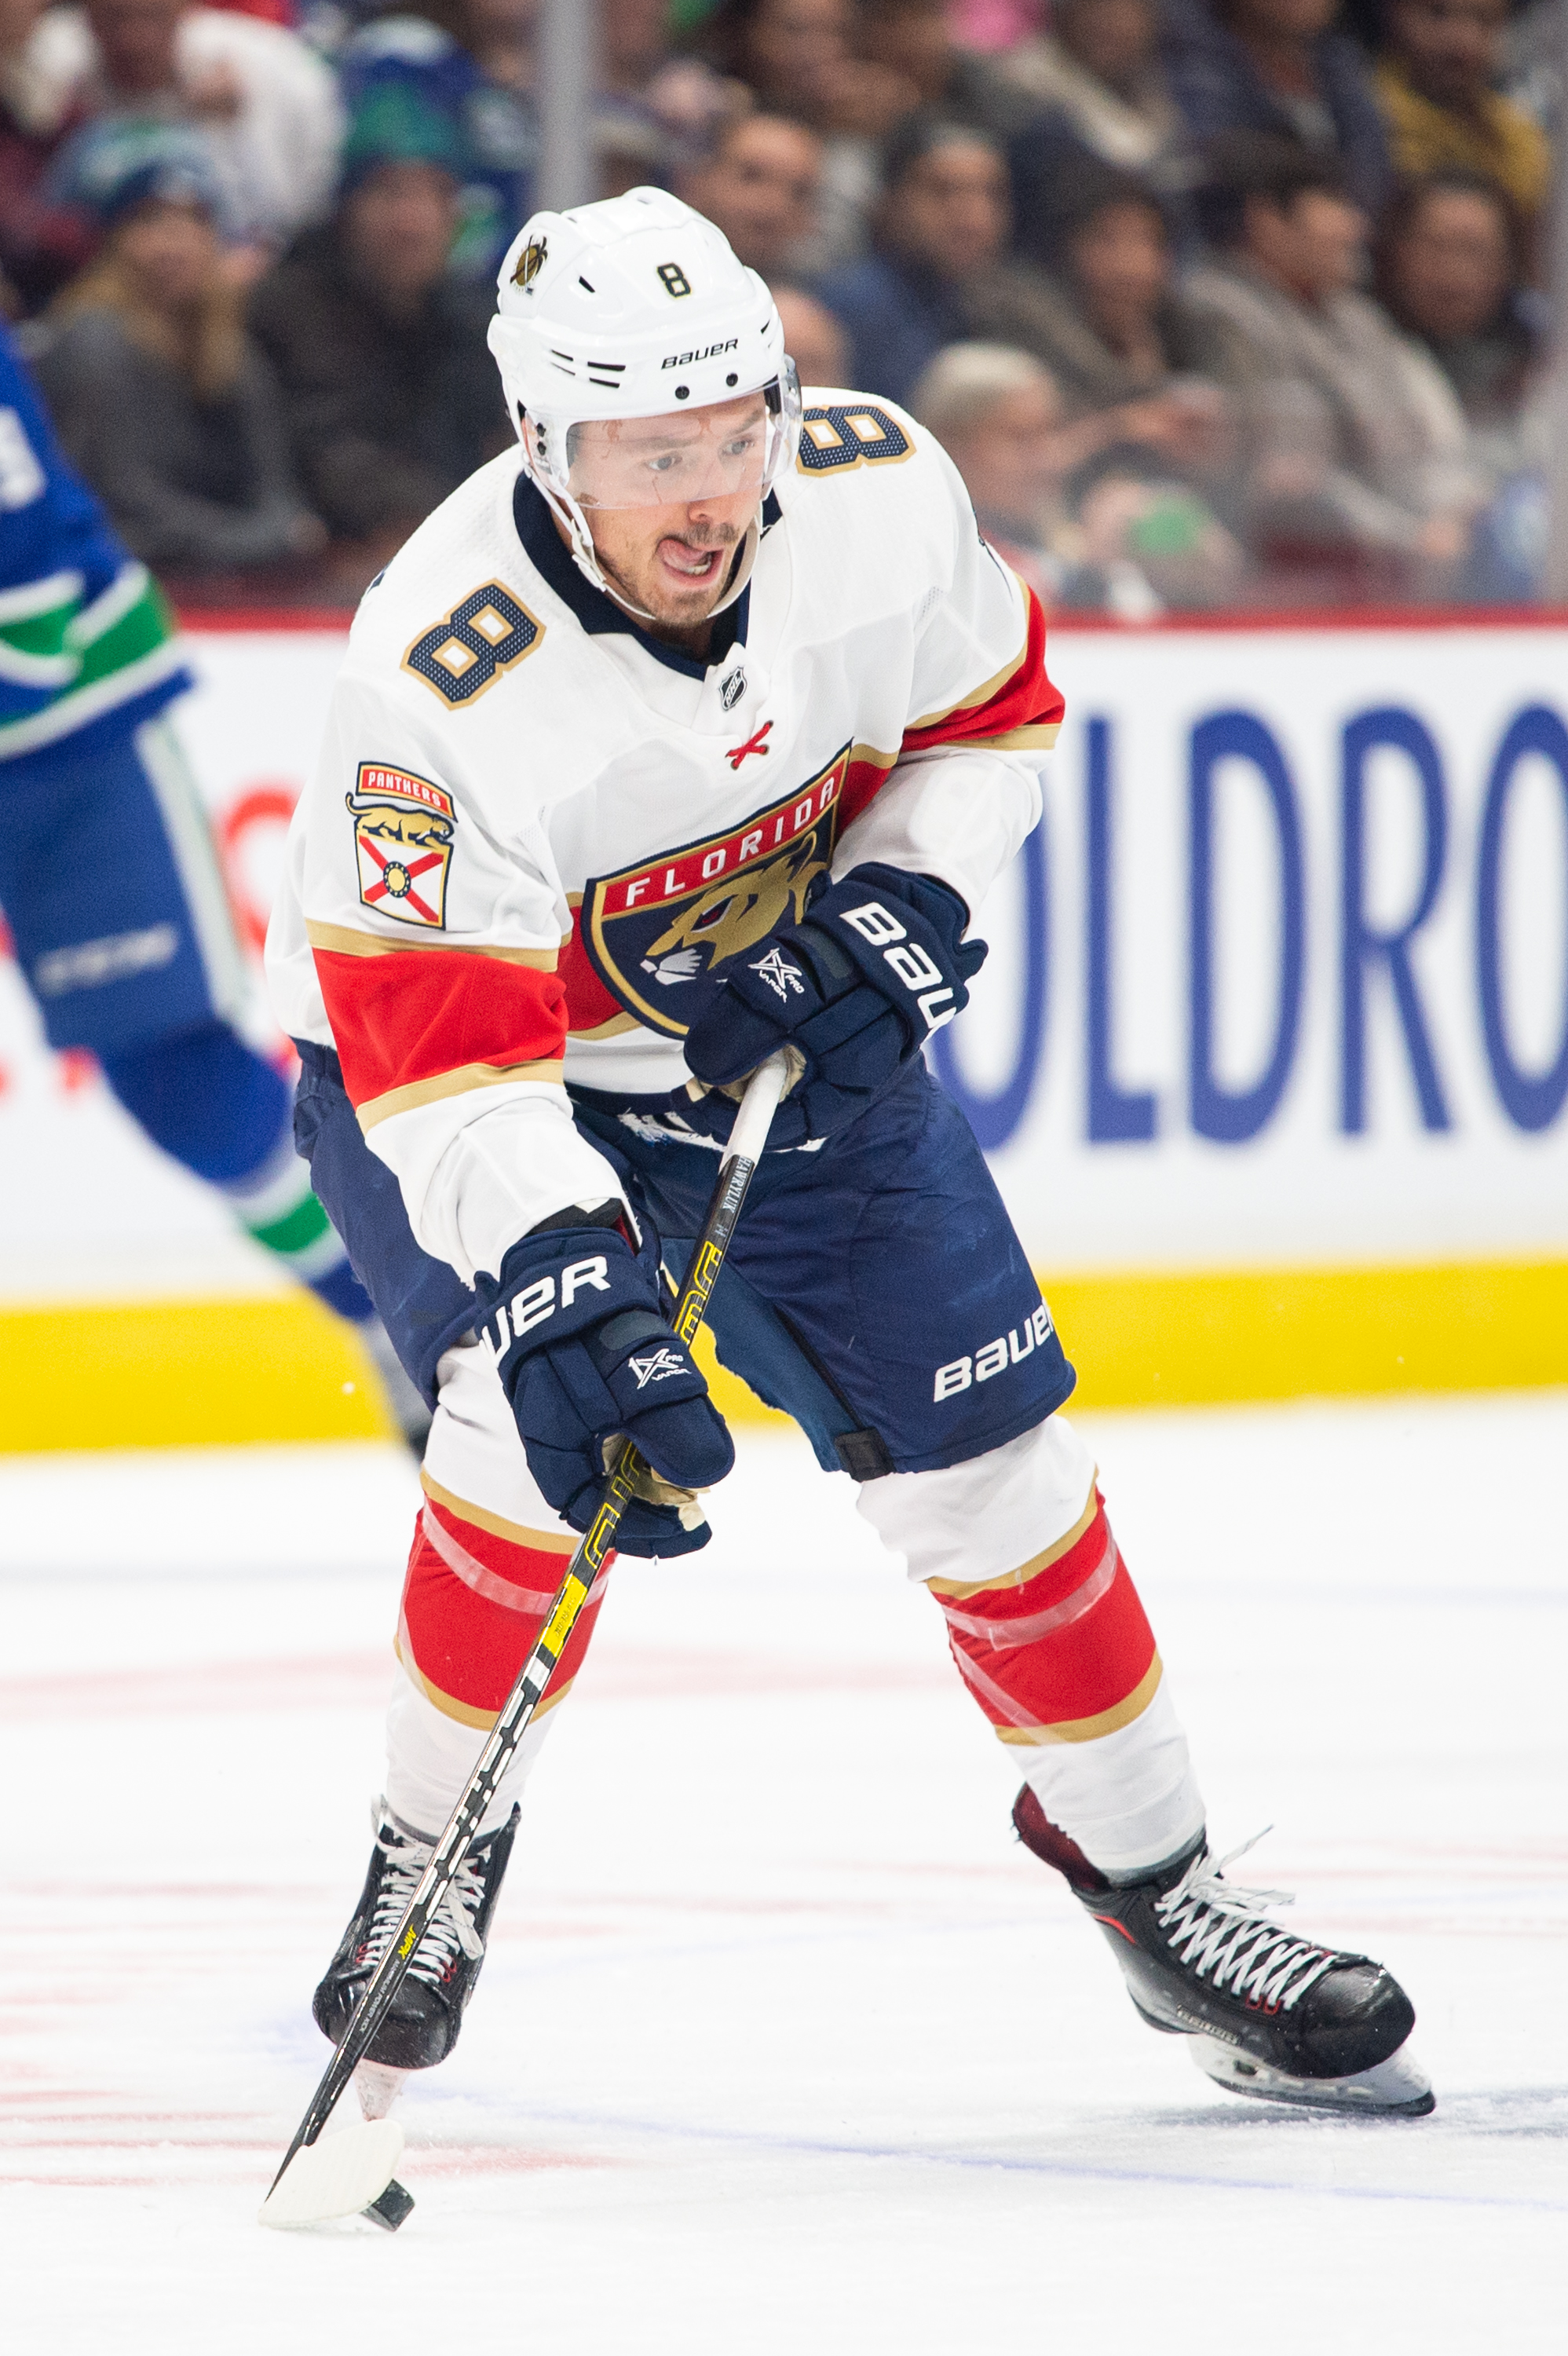 NHL: OCT 28 Panthers at Canucks